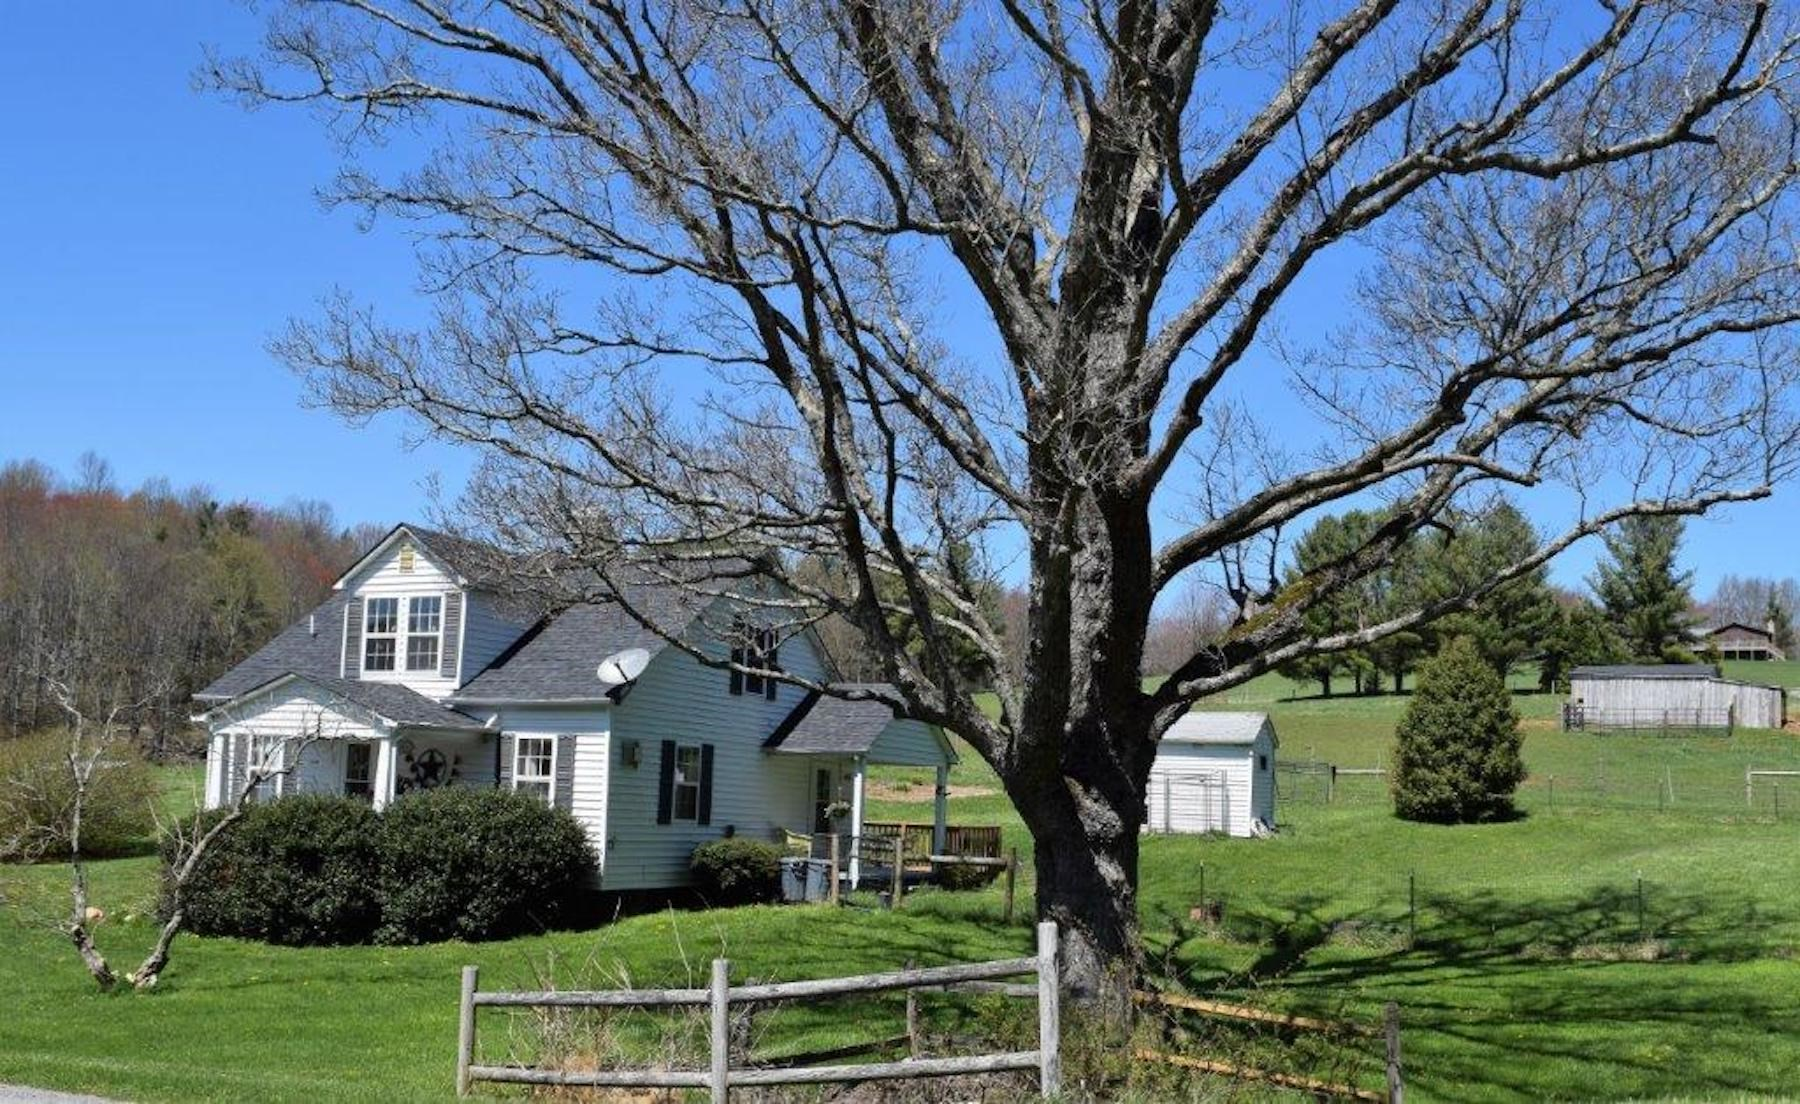 Sweet Country Home for Sale in Willis VA!